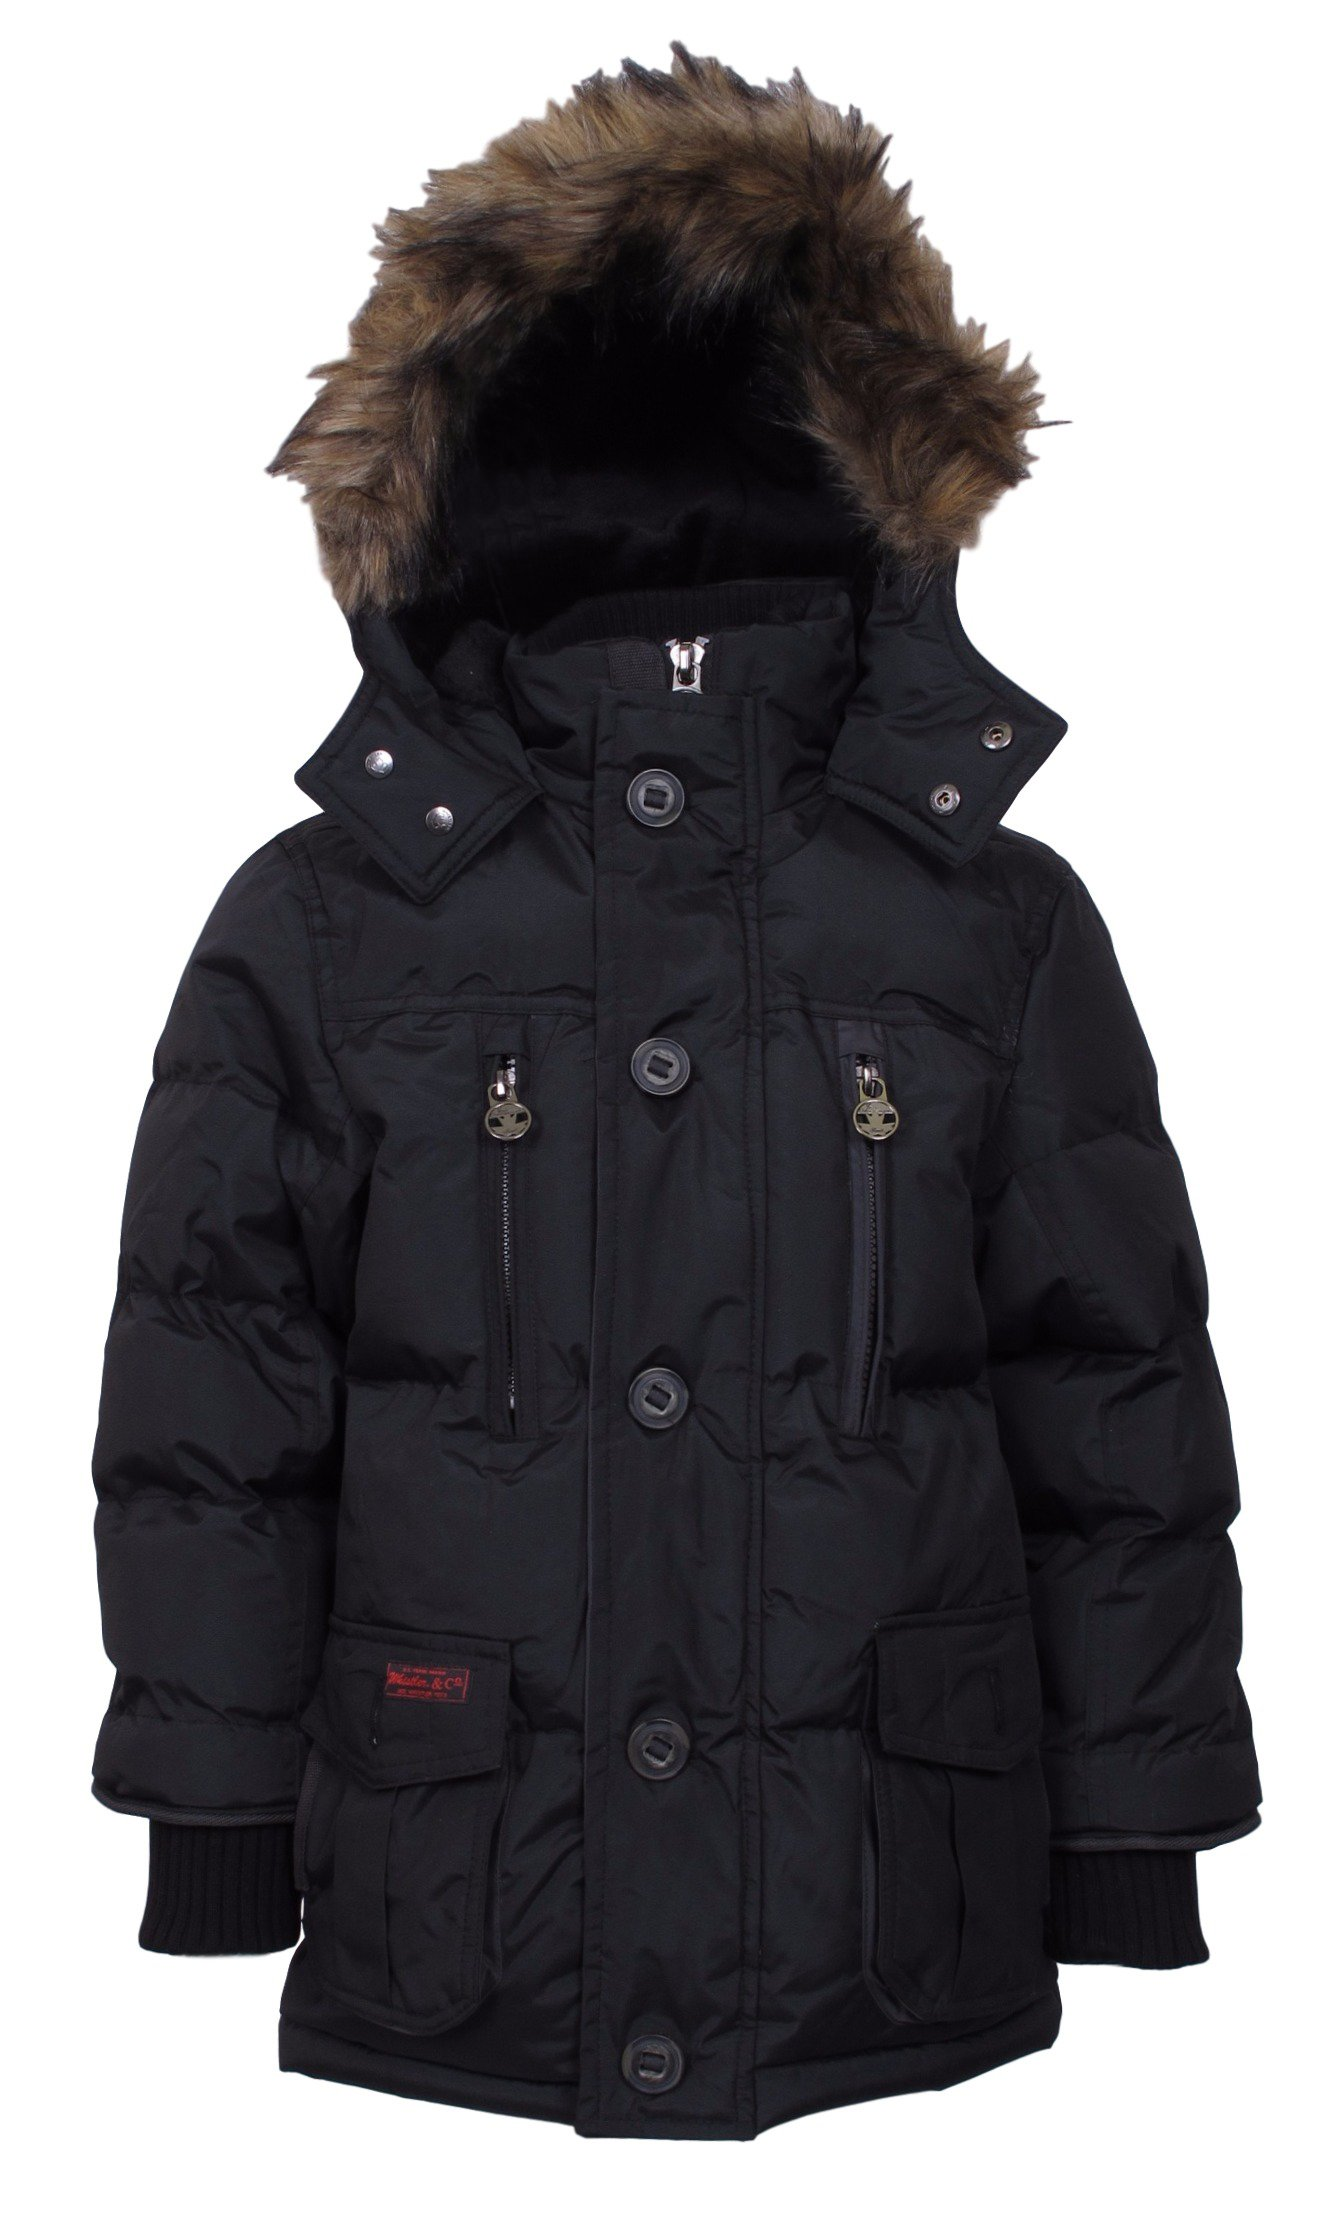 J. Whistler Base Camp Parka Bubble Snorkel Hooded Jacket Coat Insulated Black 10/12 by J. Whistler